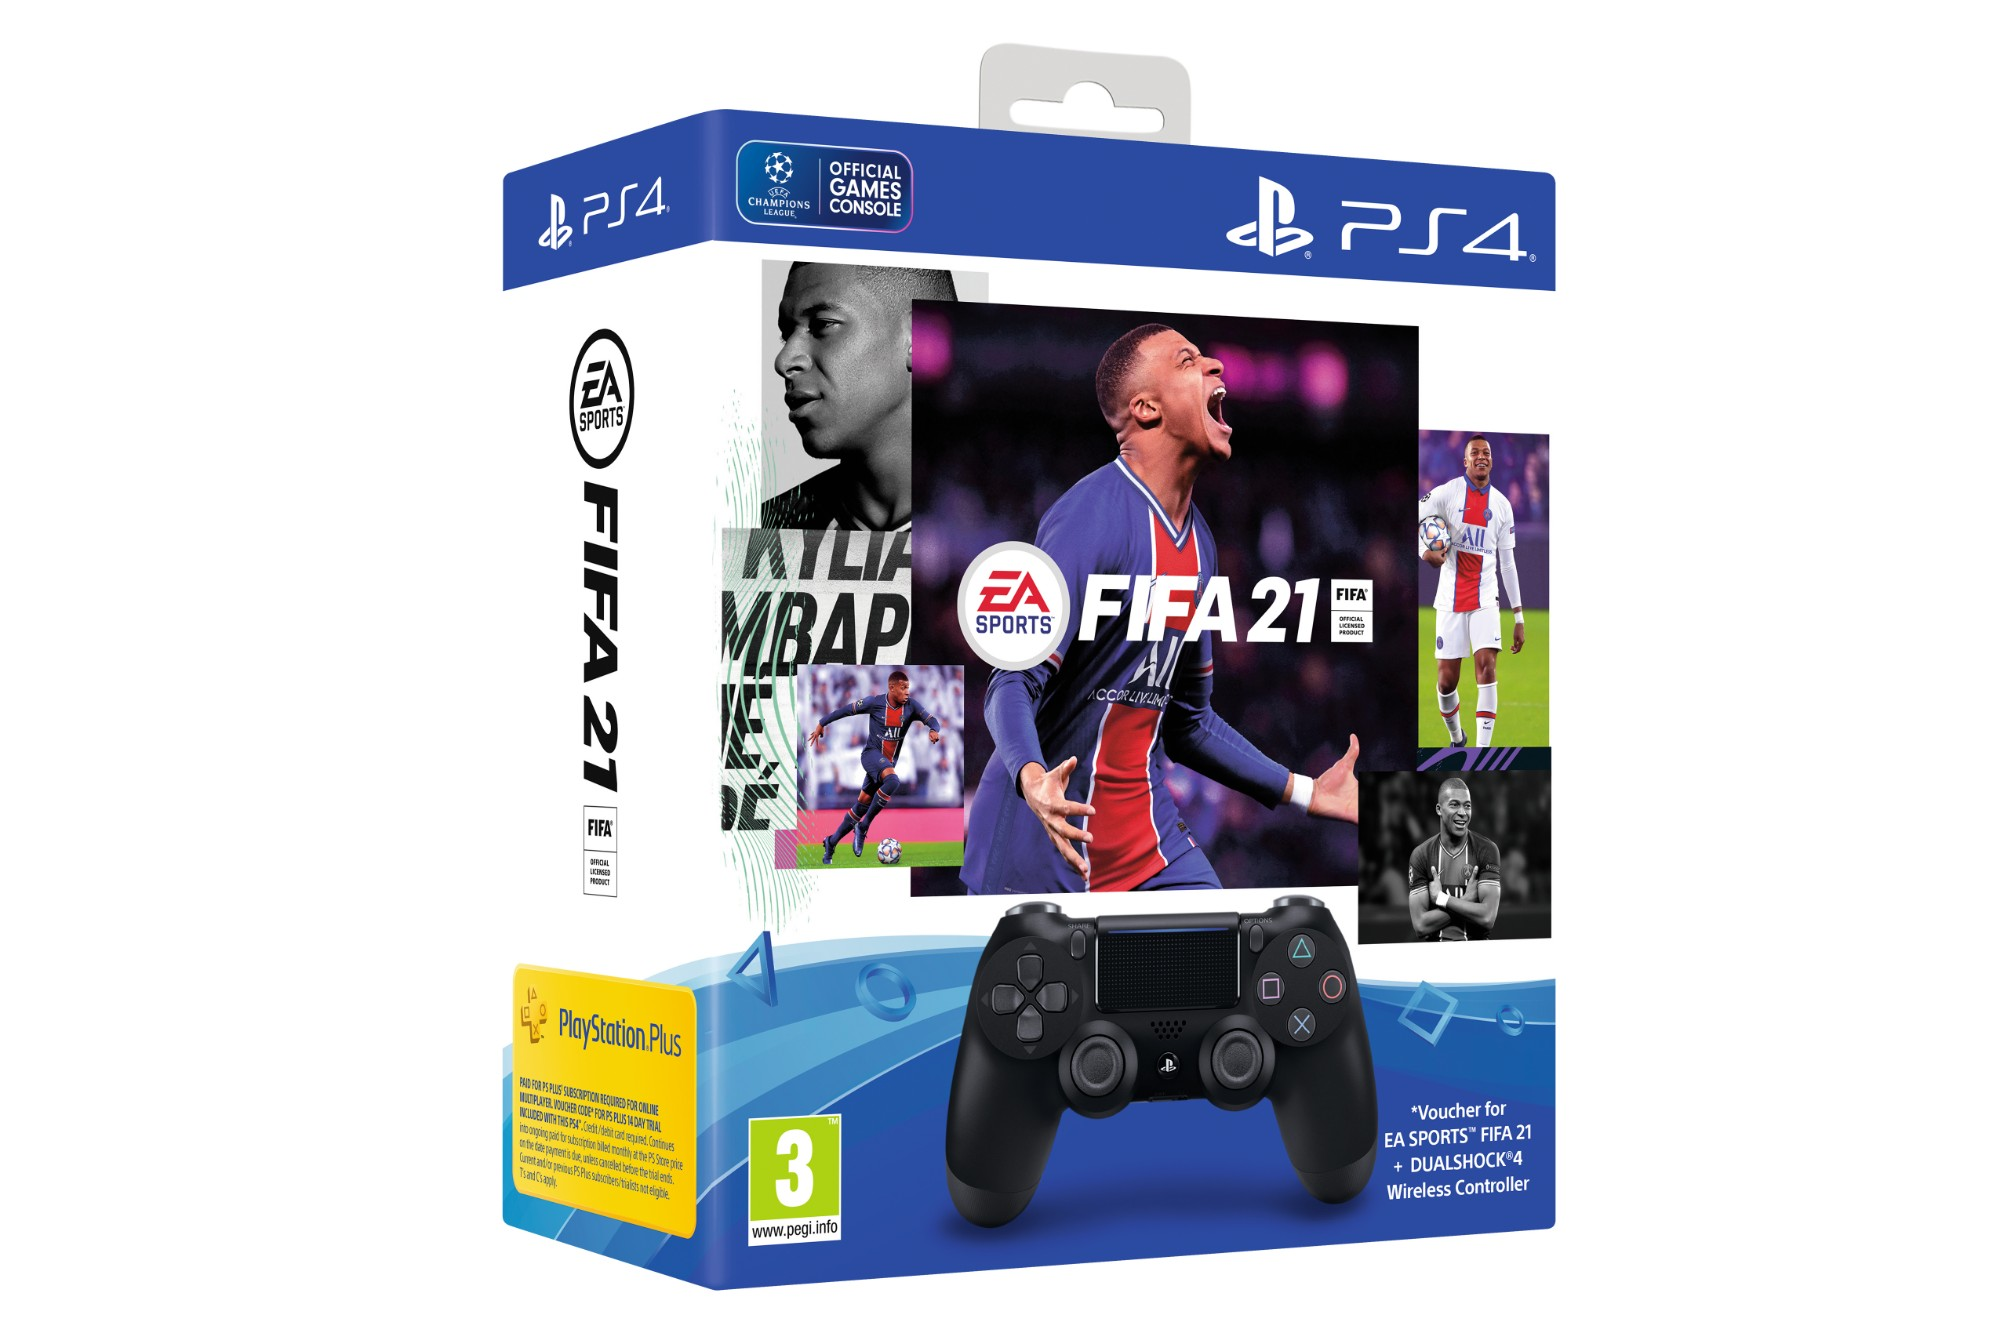 Sony PS4 DualShock Controller with FIFA 2021 Digital Download - Black